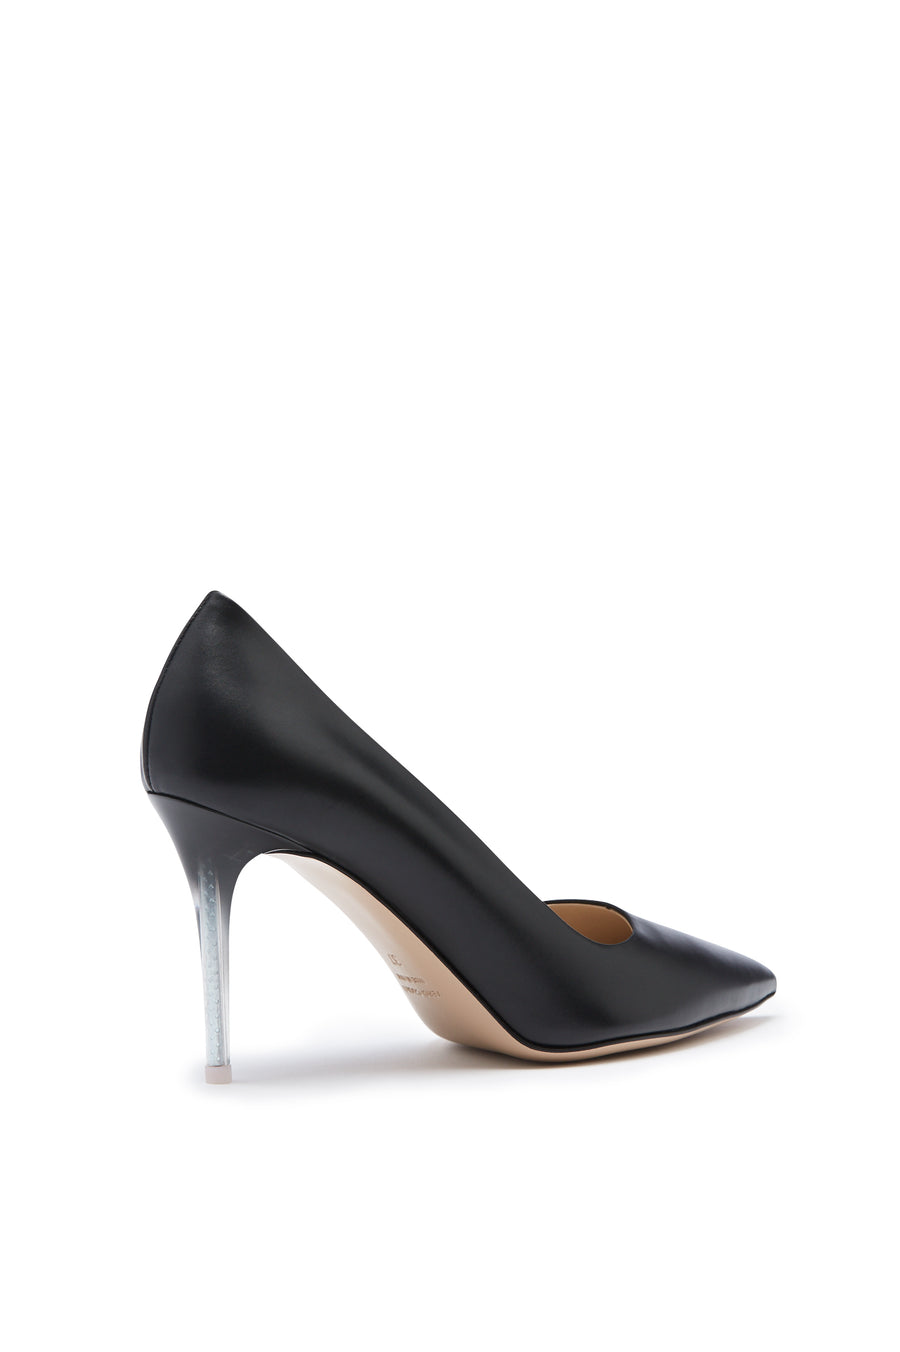 Pointed Leather Pump, Italian calf leather, 9cm plexi heel with a sprayed finish. Color Nero